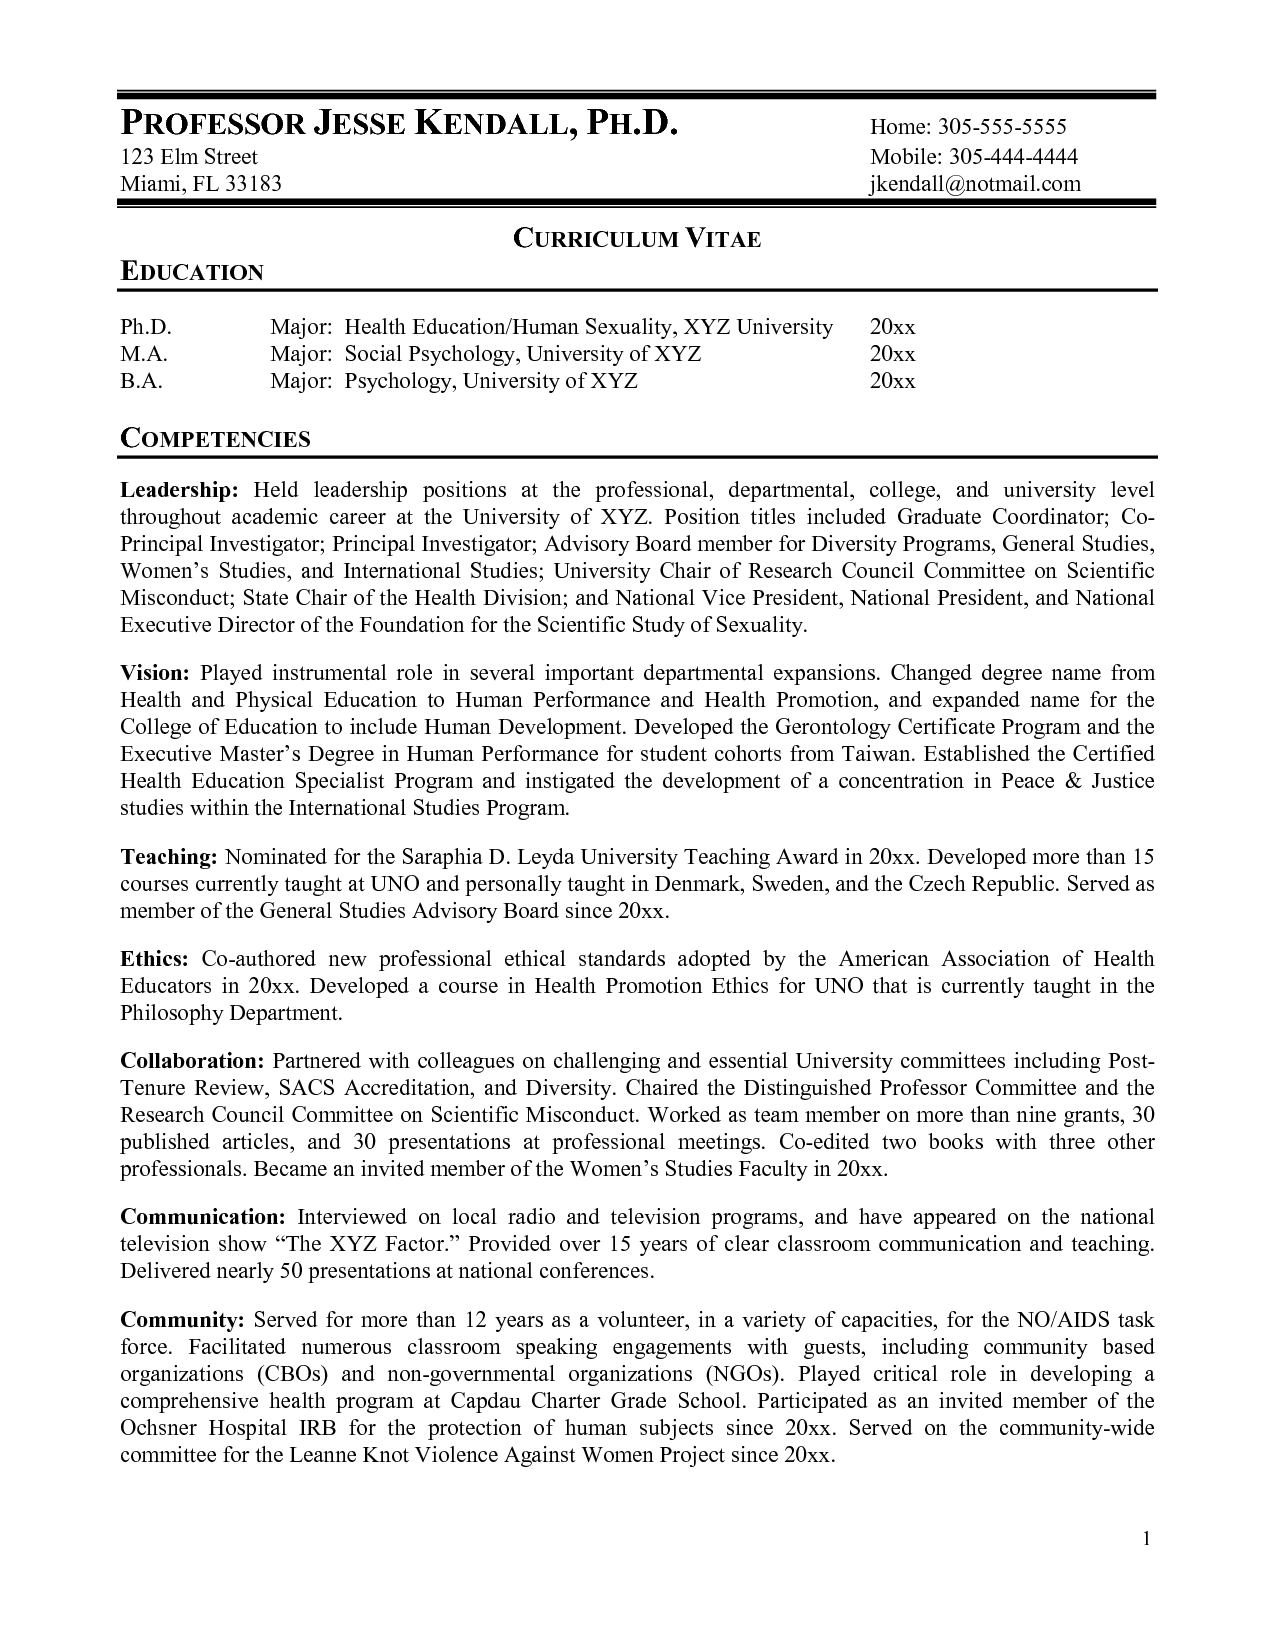 Examples Of Cv And Resume Curriculum Vitae College Professor Professor Resume